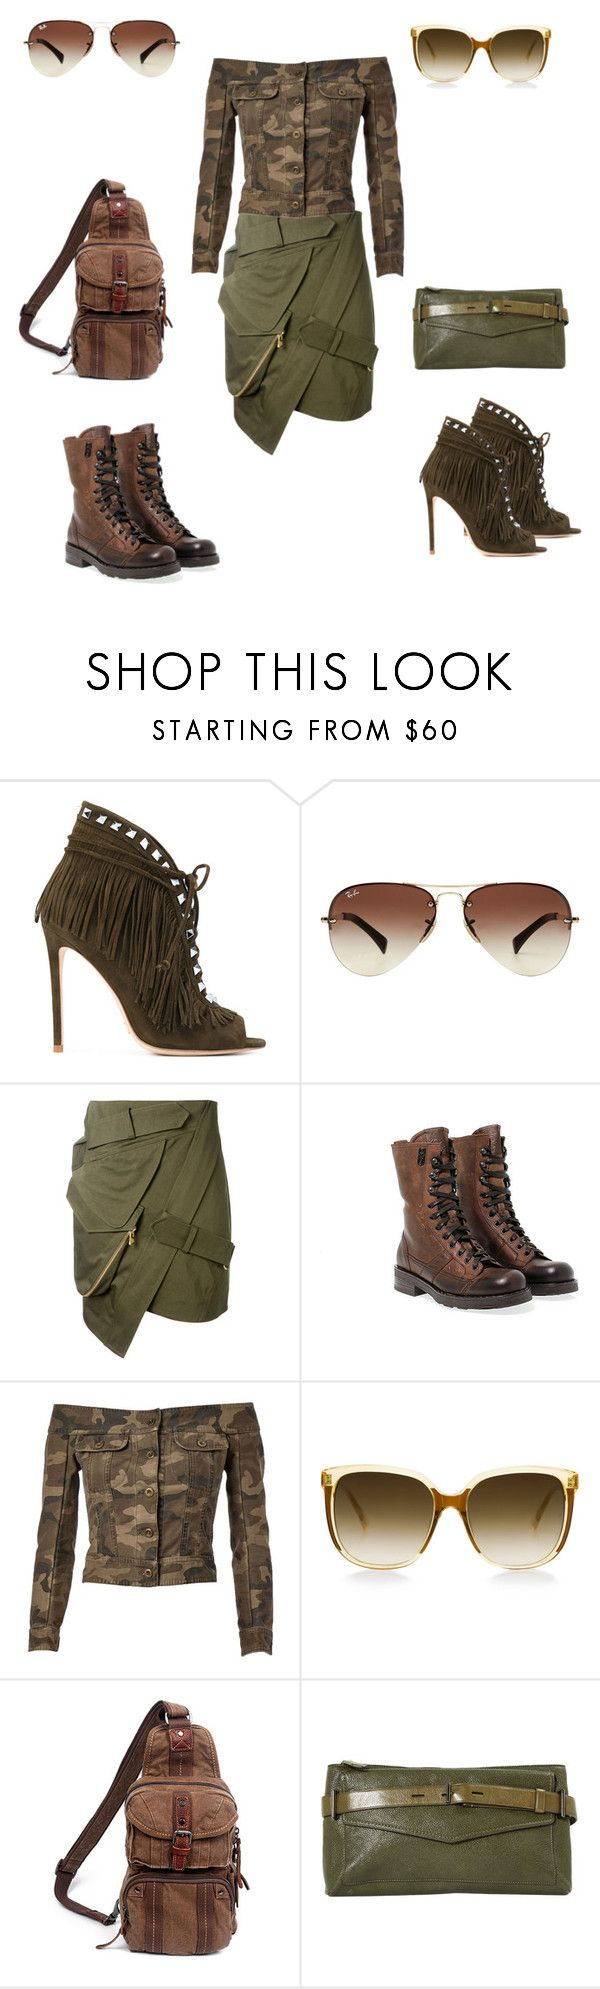 """Детали меняют всё"" by repriza on Polyvore featuring мода, Gianni Renzi, Ray-Ban, Alexandre Vauthier, O.X.S, Faith Connexion, Steven Alan, TSD и Reed Krakoff"